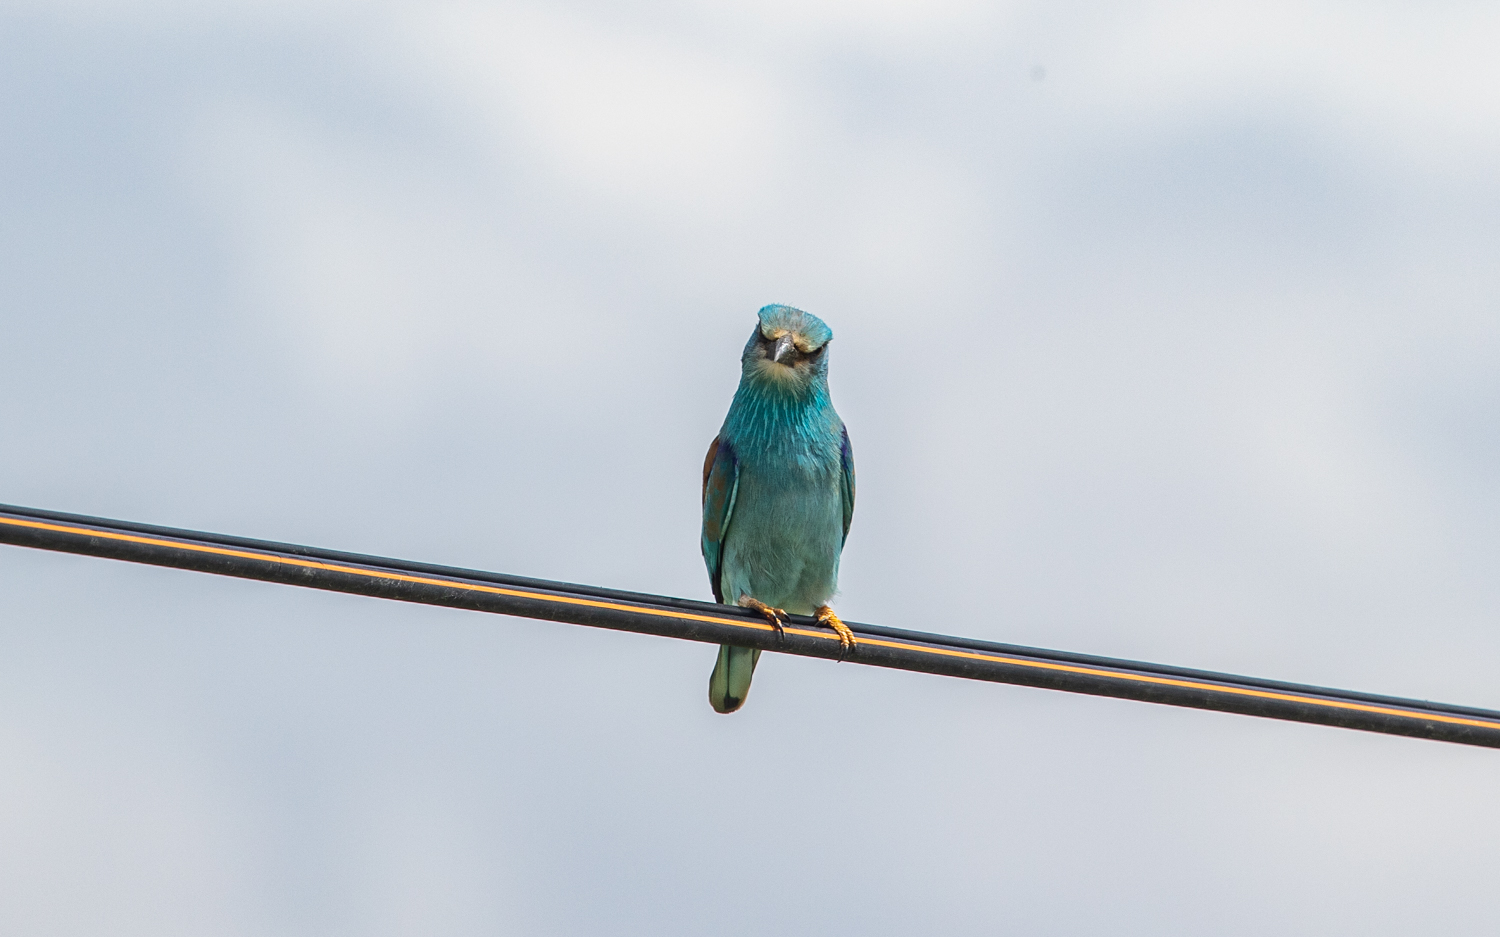 European Roller on way back to town